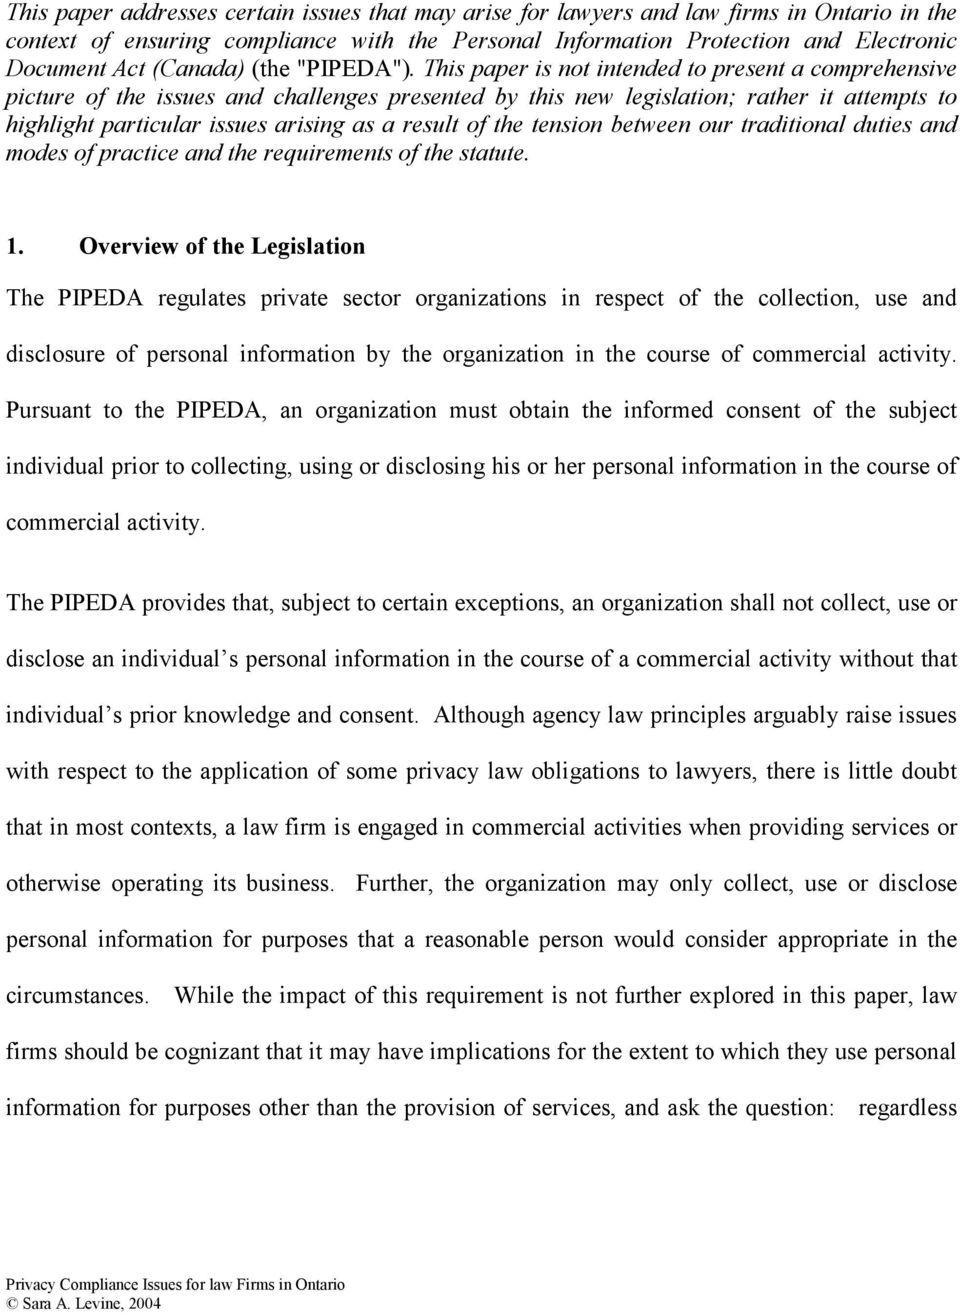 This paper is not intended to present a comprehensive picture of the issues and challenges presented by this new legislation; rather it attempts to highlight particular issues arising as a result of